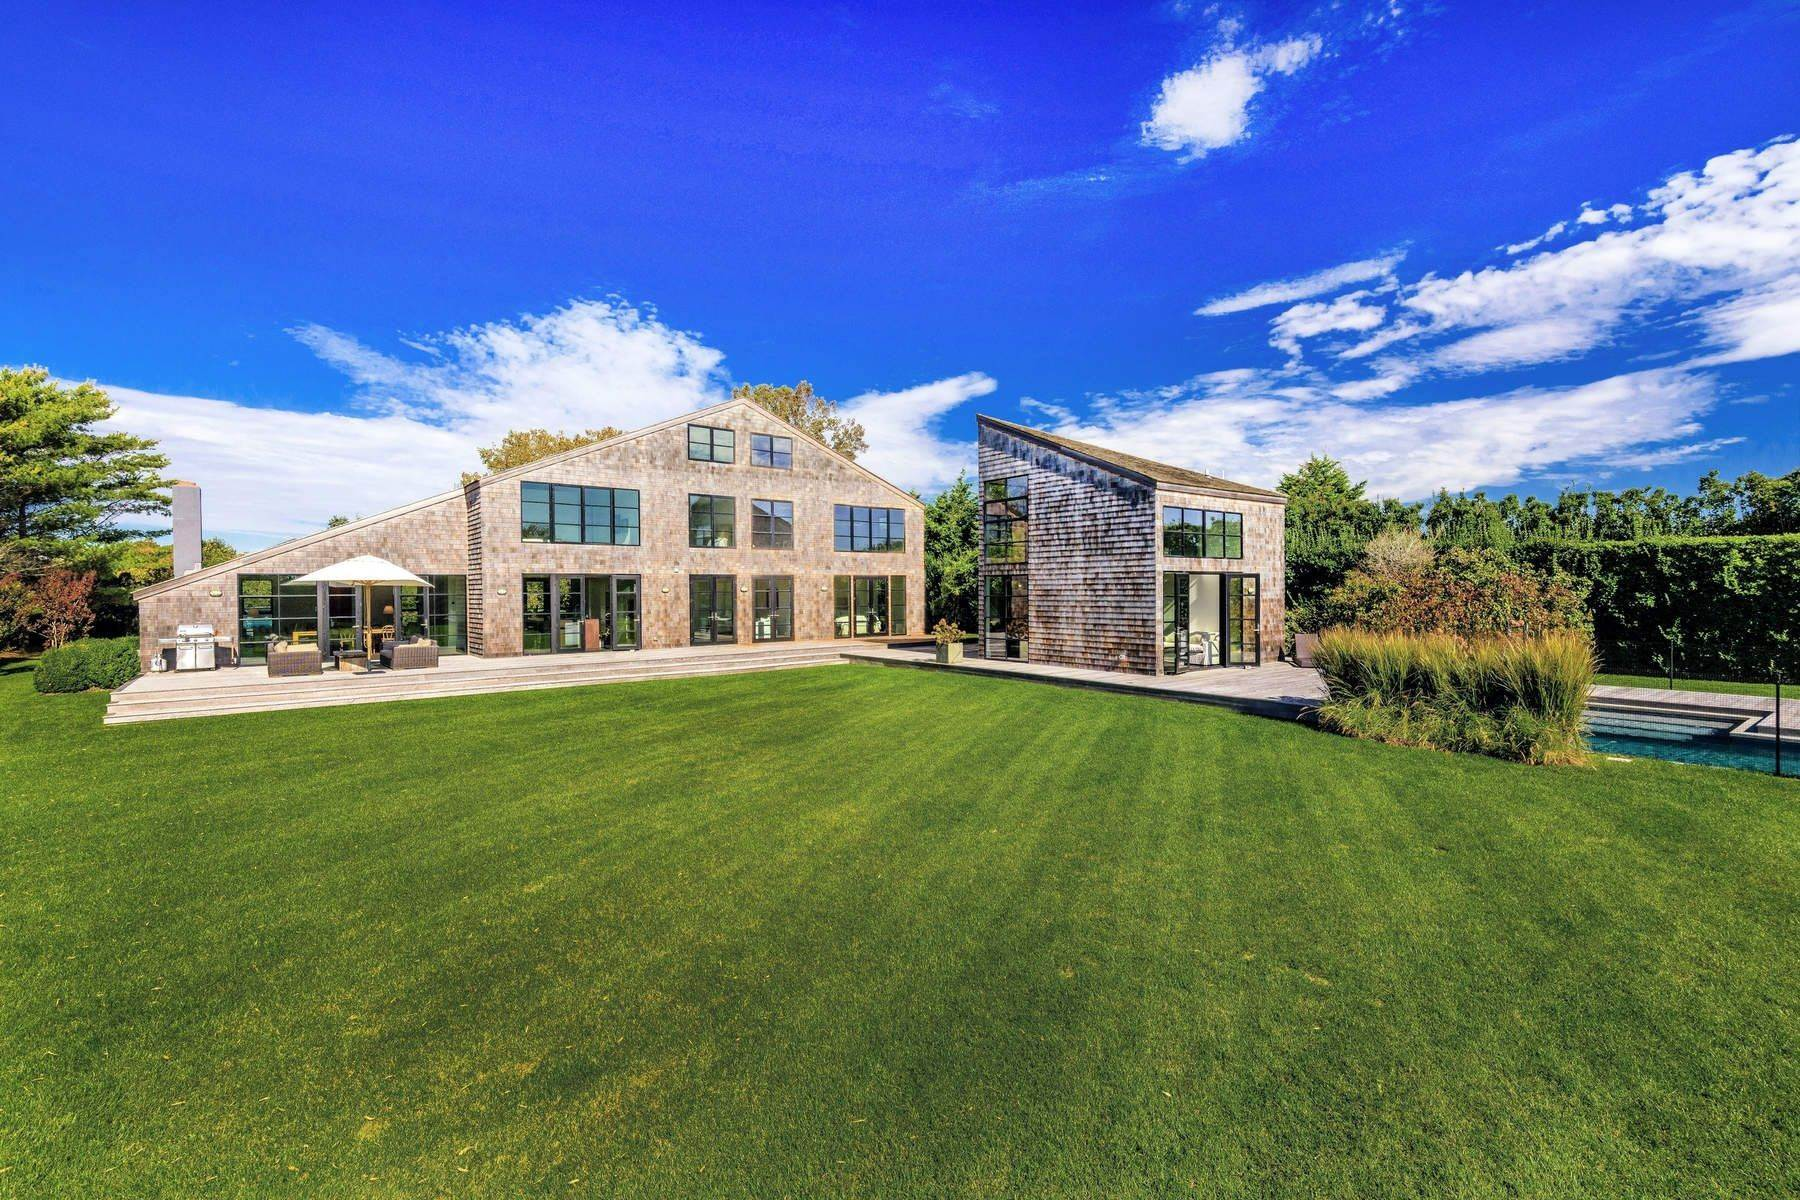 Property for Sale at Modern Chic Personified 811 Halsey Lane Bridgehampton, New York 11932 United States